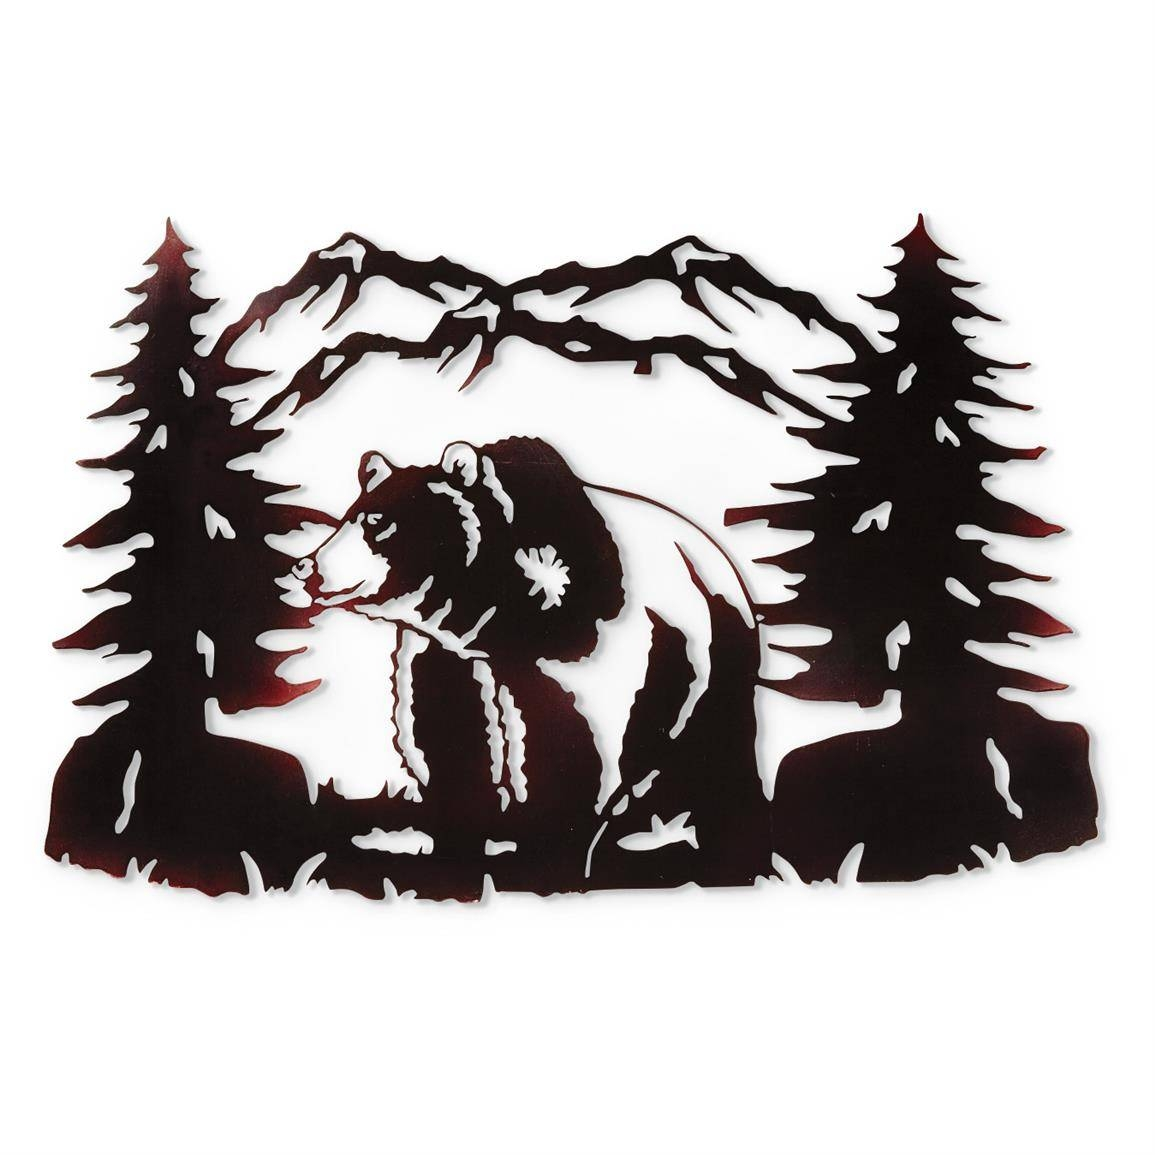 Bear Metal Wall Art – 648669, Wall Art At Sportsman's Guide Inside Most Recent Deer Metal Wall Art (View 2 of 20)